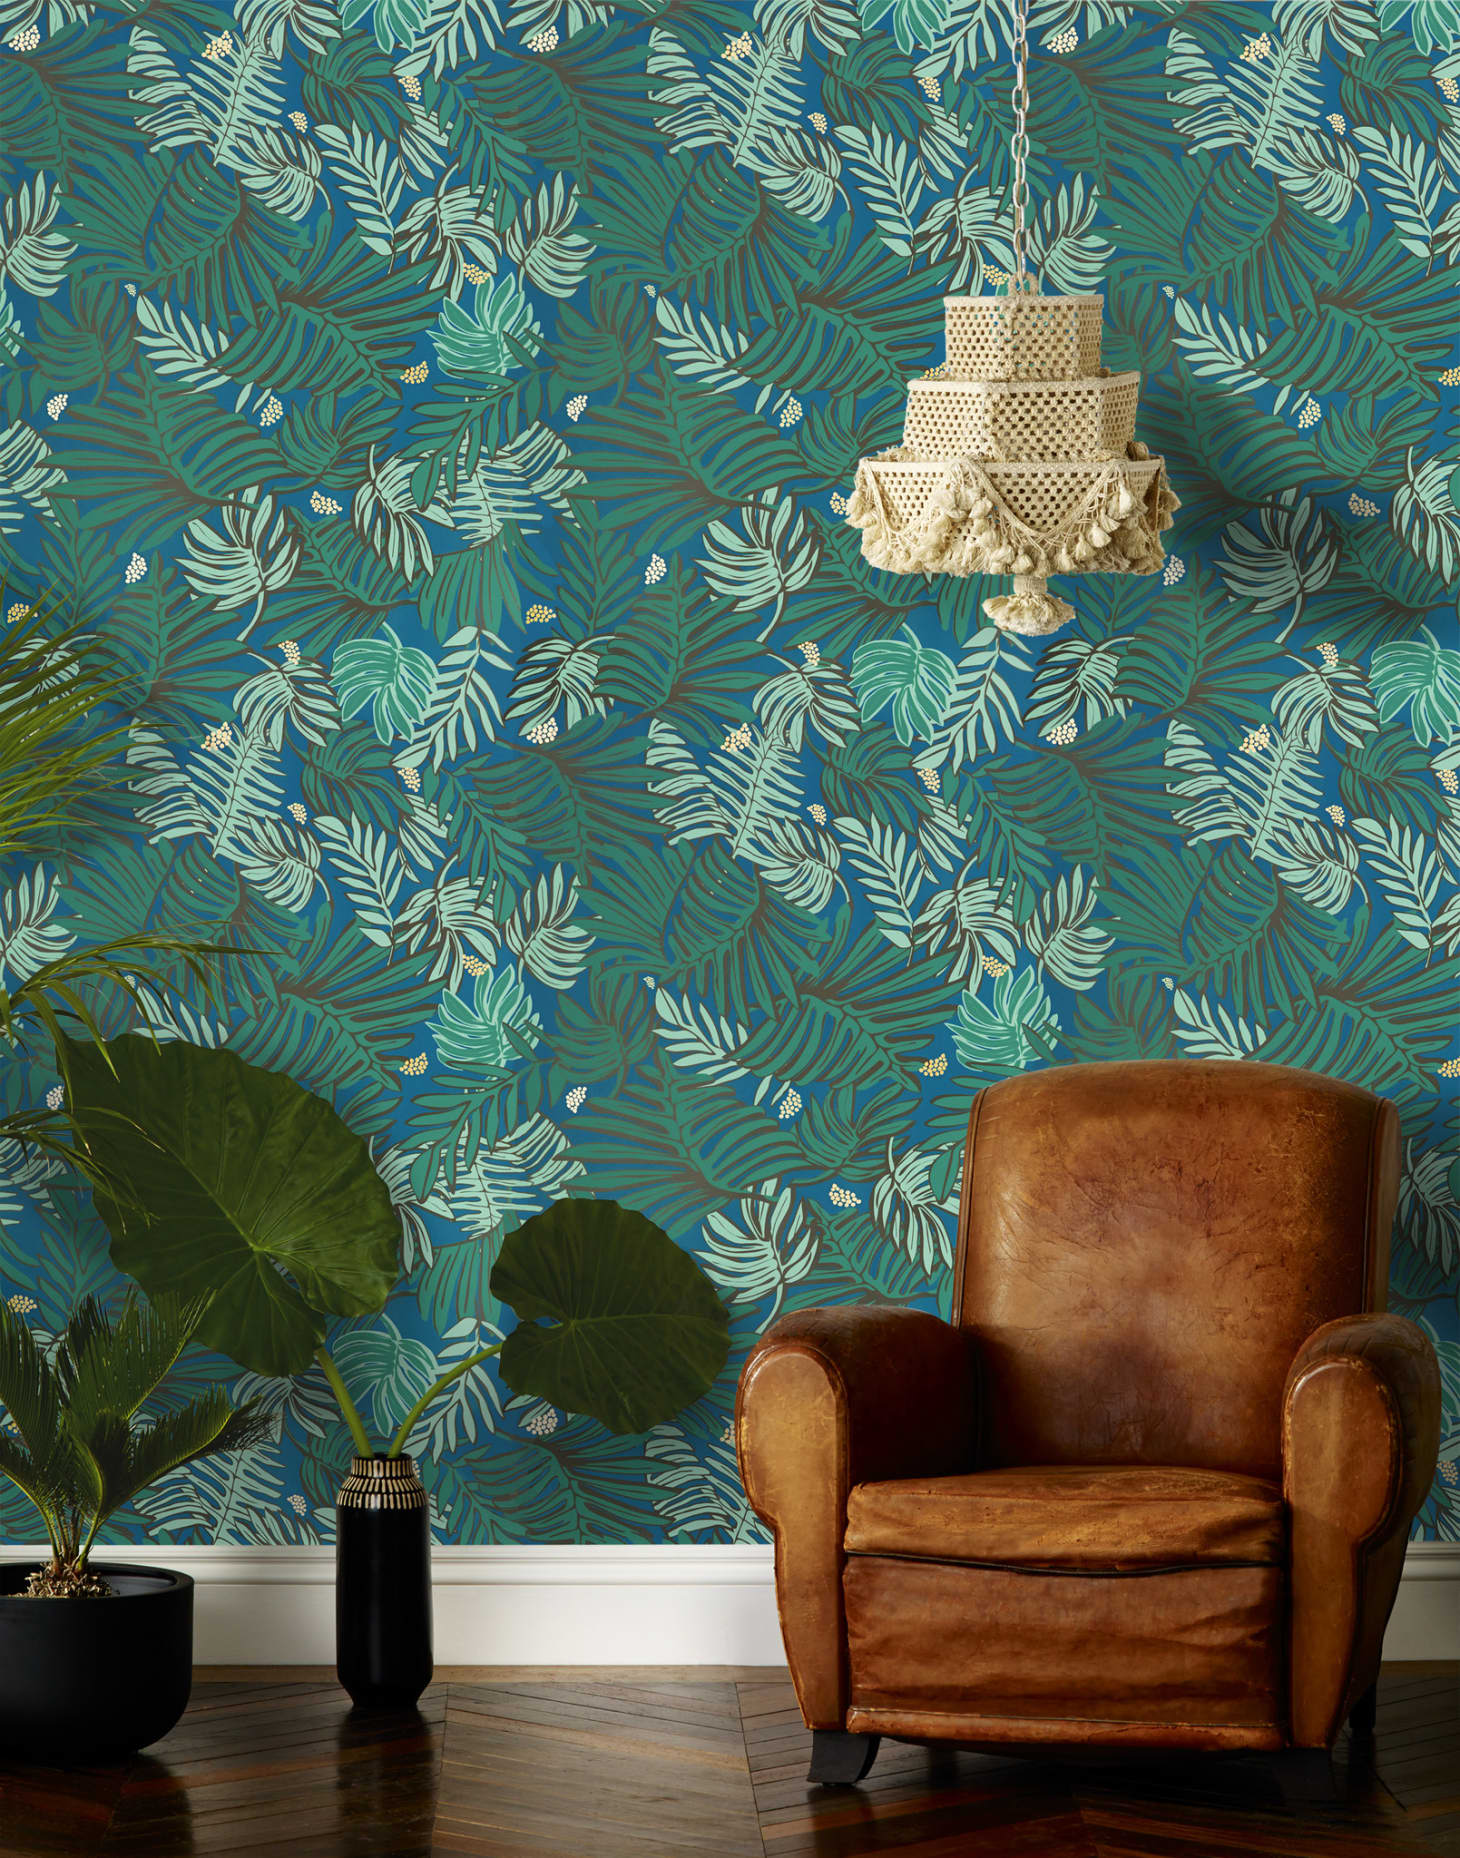 Where to Buy Palm Tree Leaf & Tropical Print Wallpaper ...